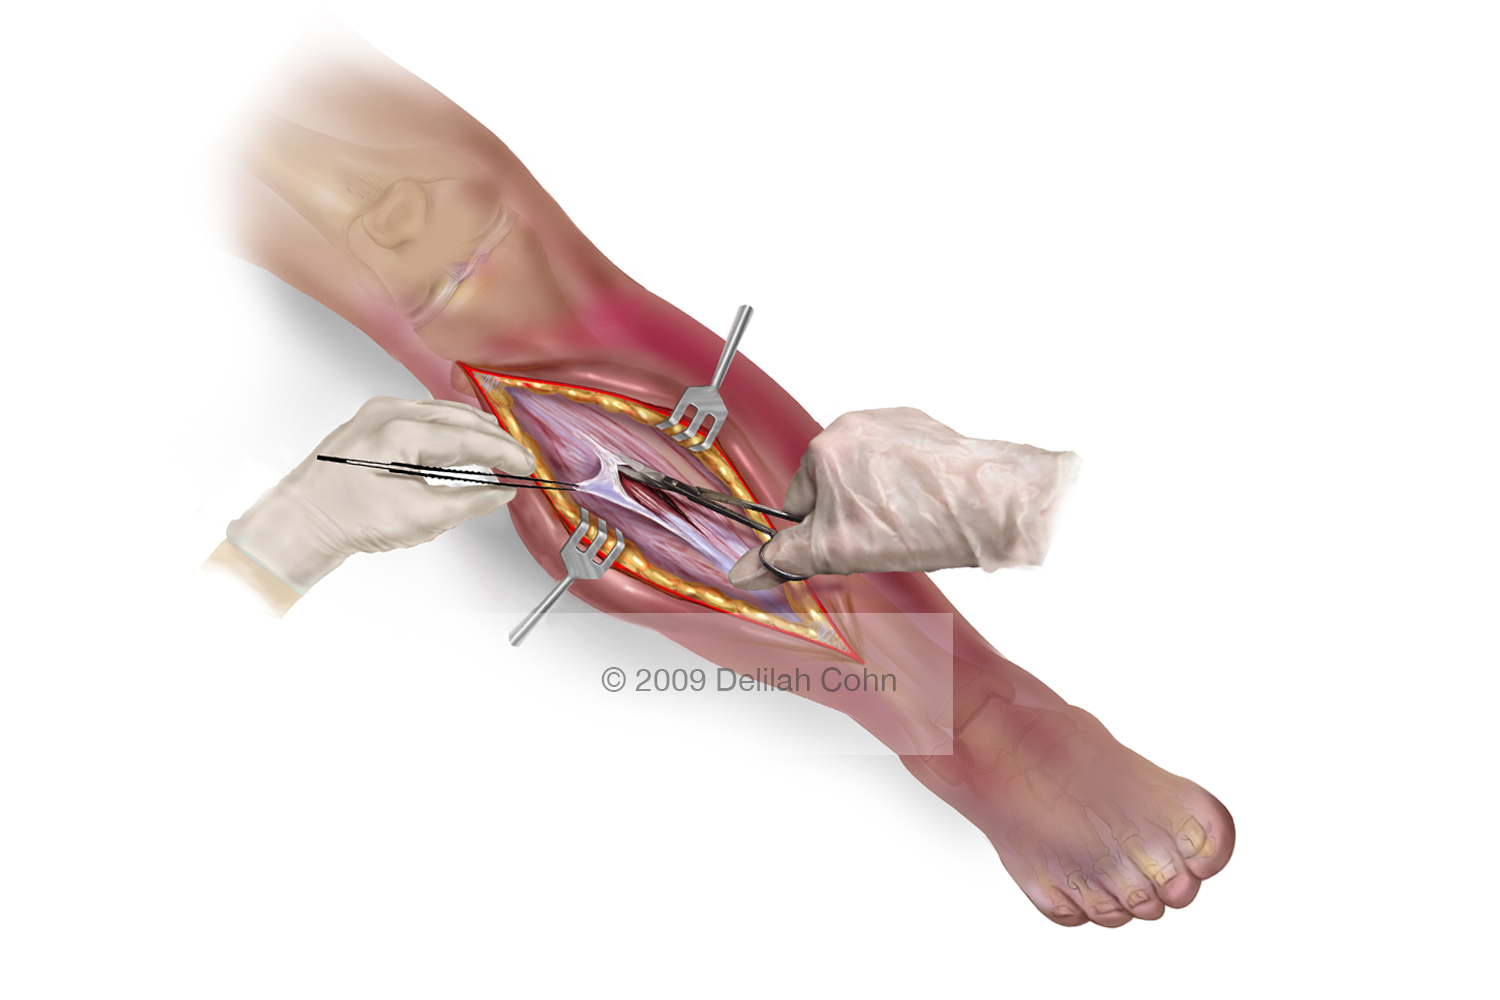 Fasciotomy of the Anterior Compartment of the leg